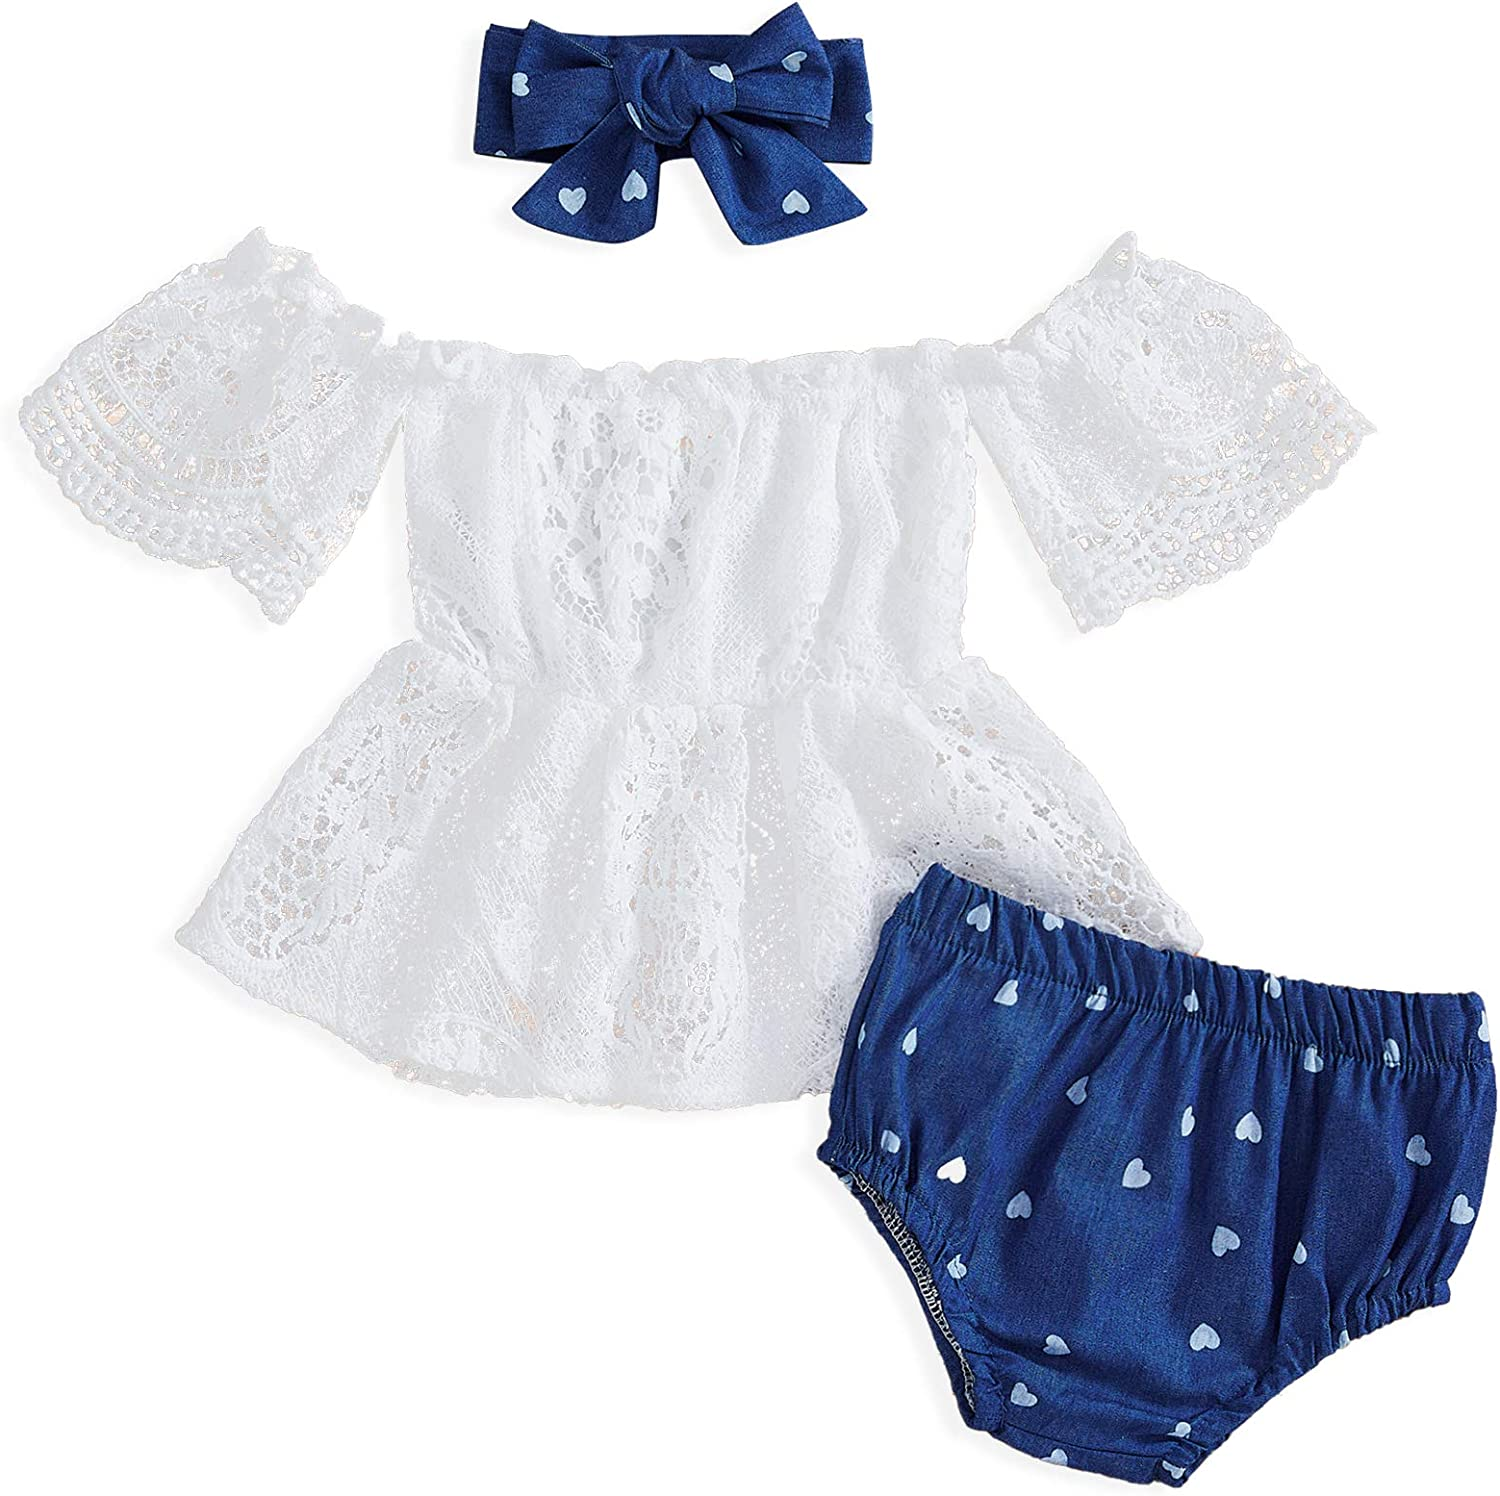 Baby Girl Summer Shorts Outfits Toddler Girl Lace Romper Jeans 2Pcs Clothes